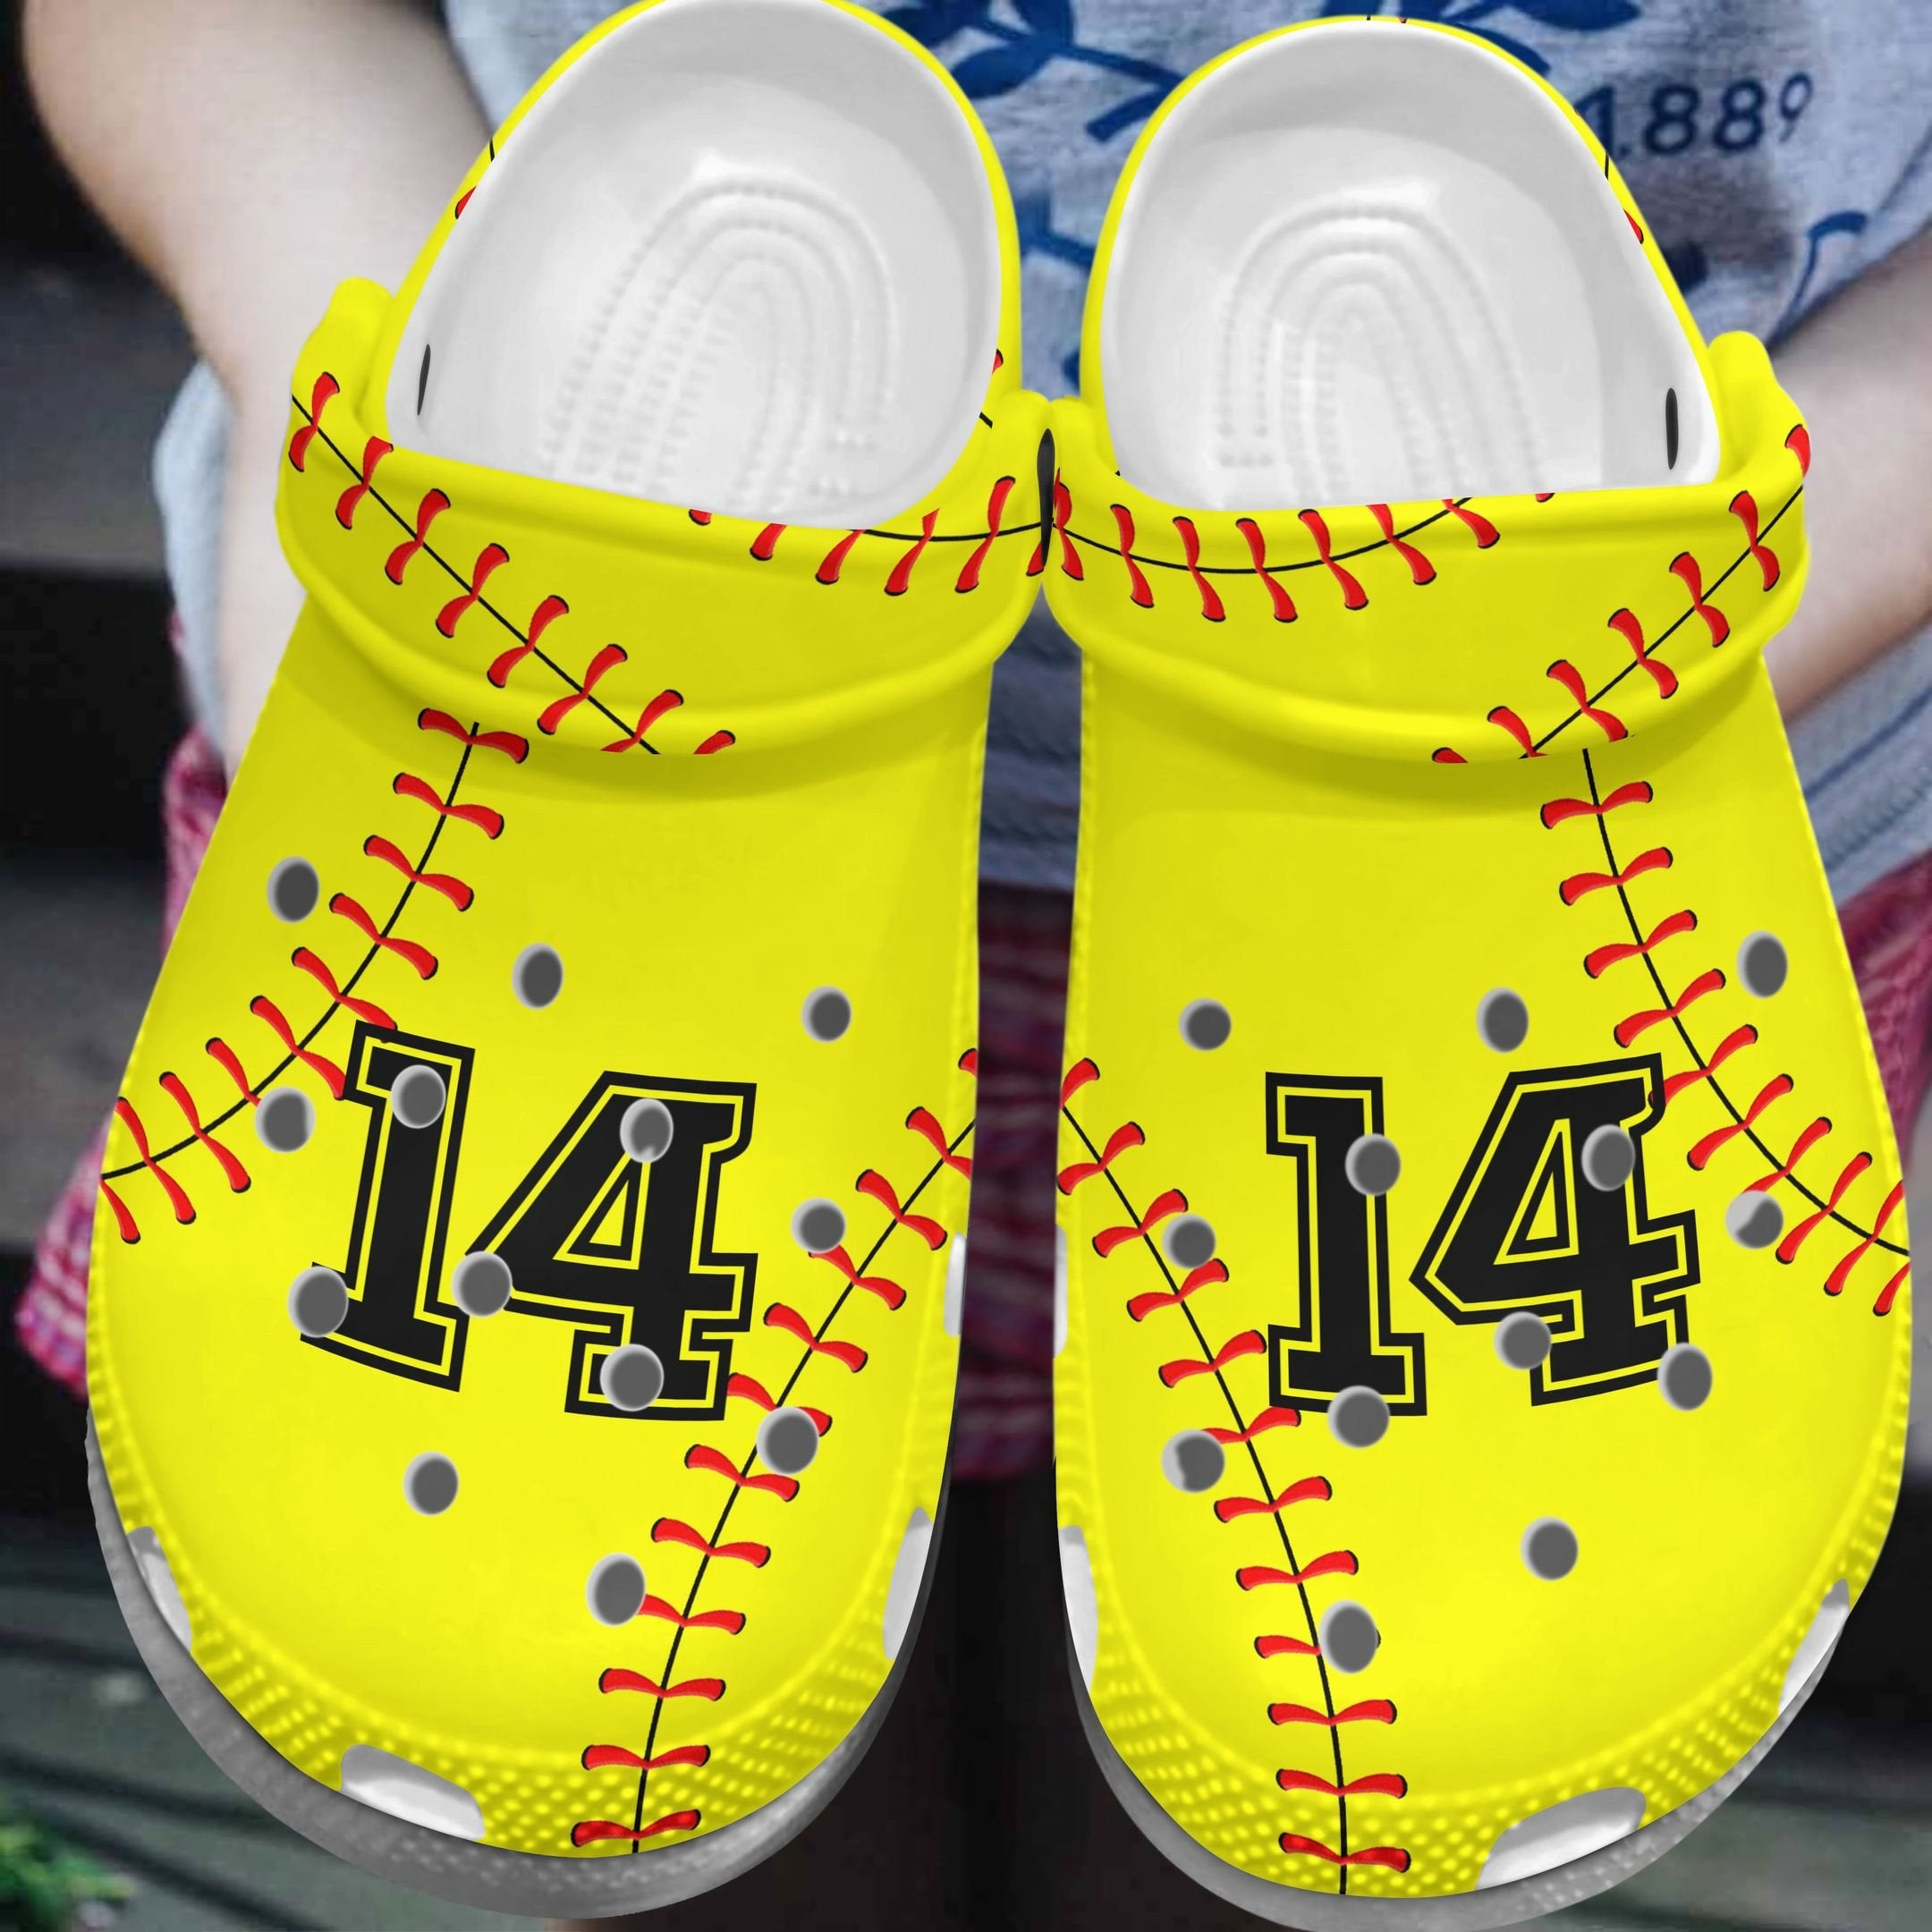 Personalized Softball Stitches Crocs Clog Shoes